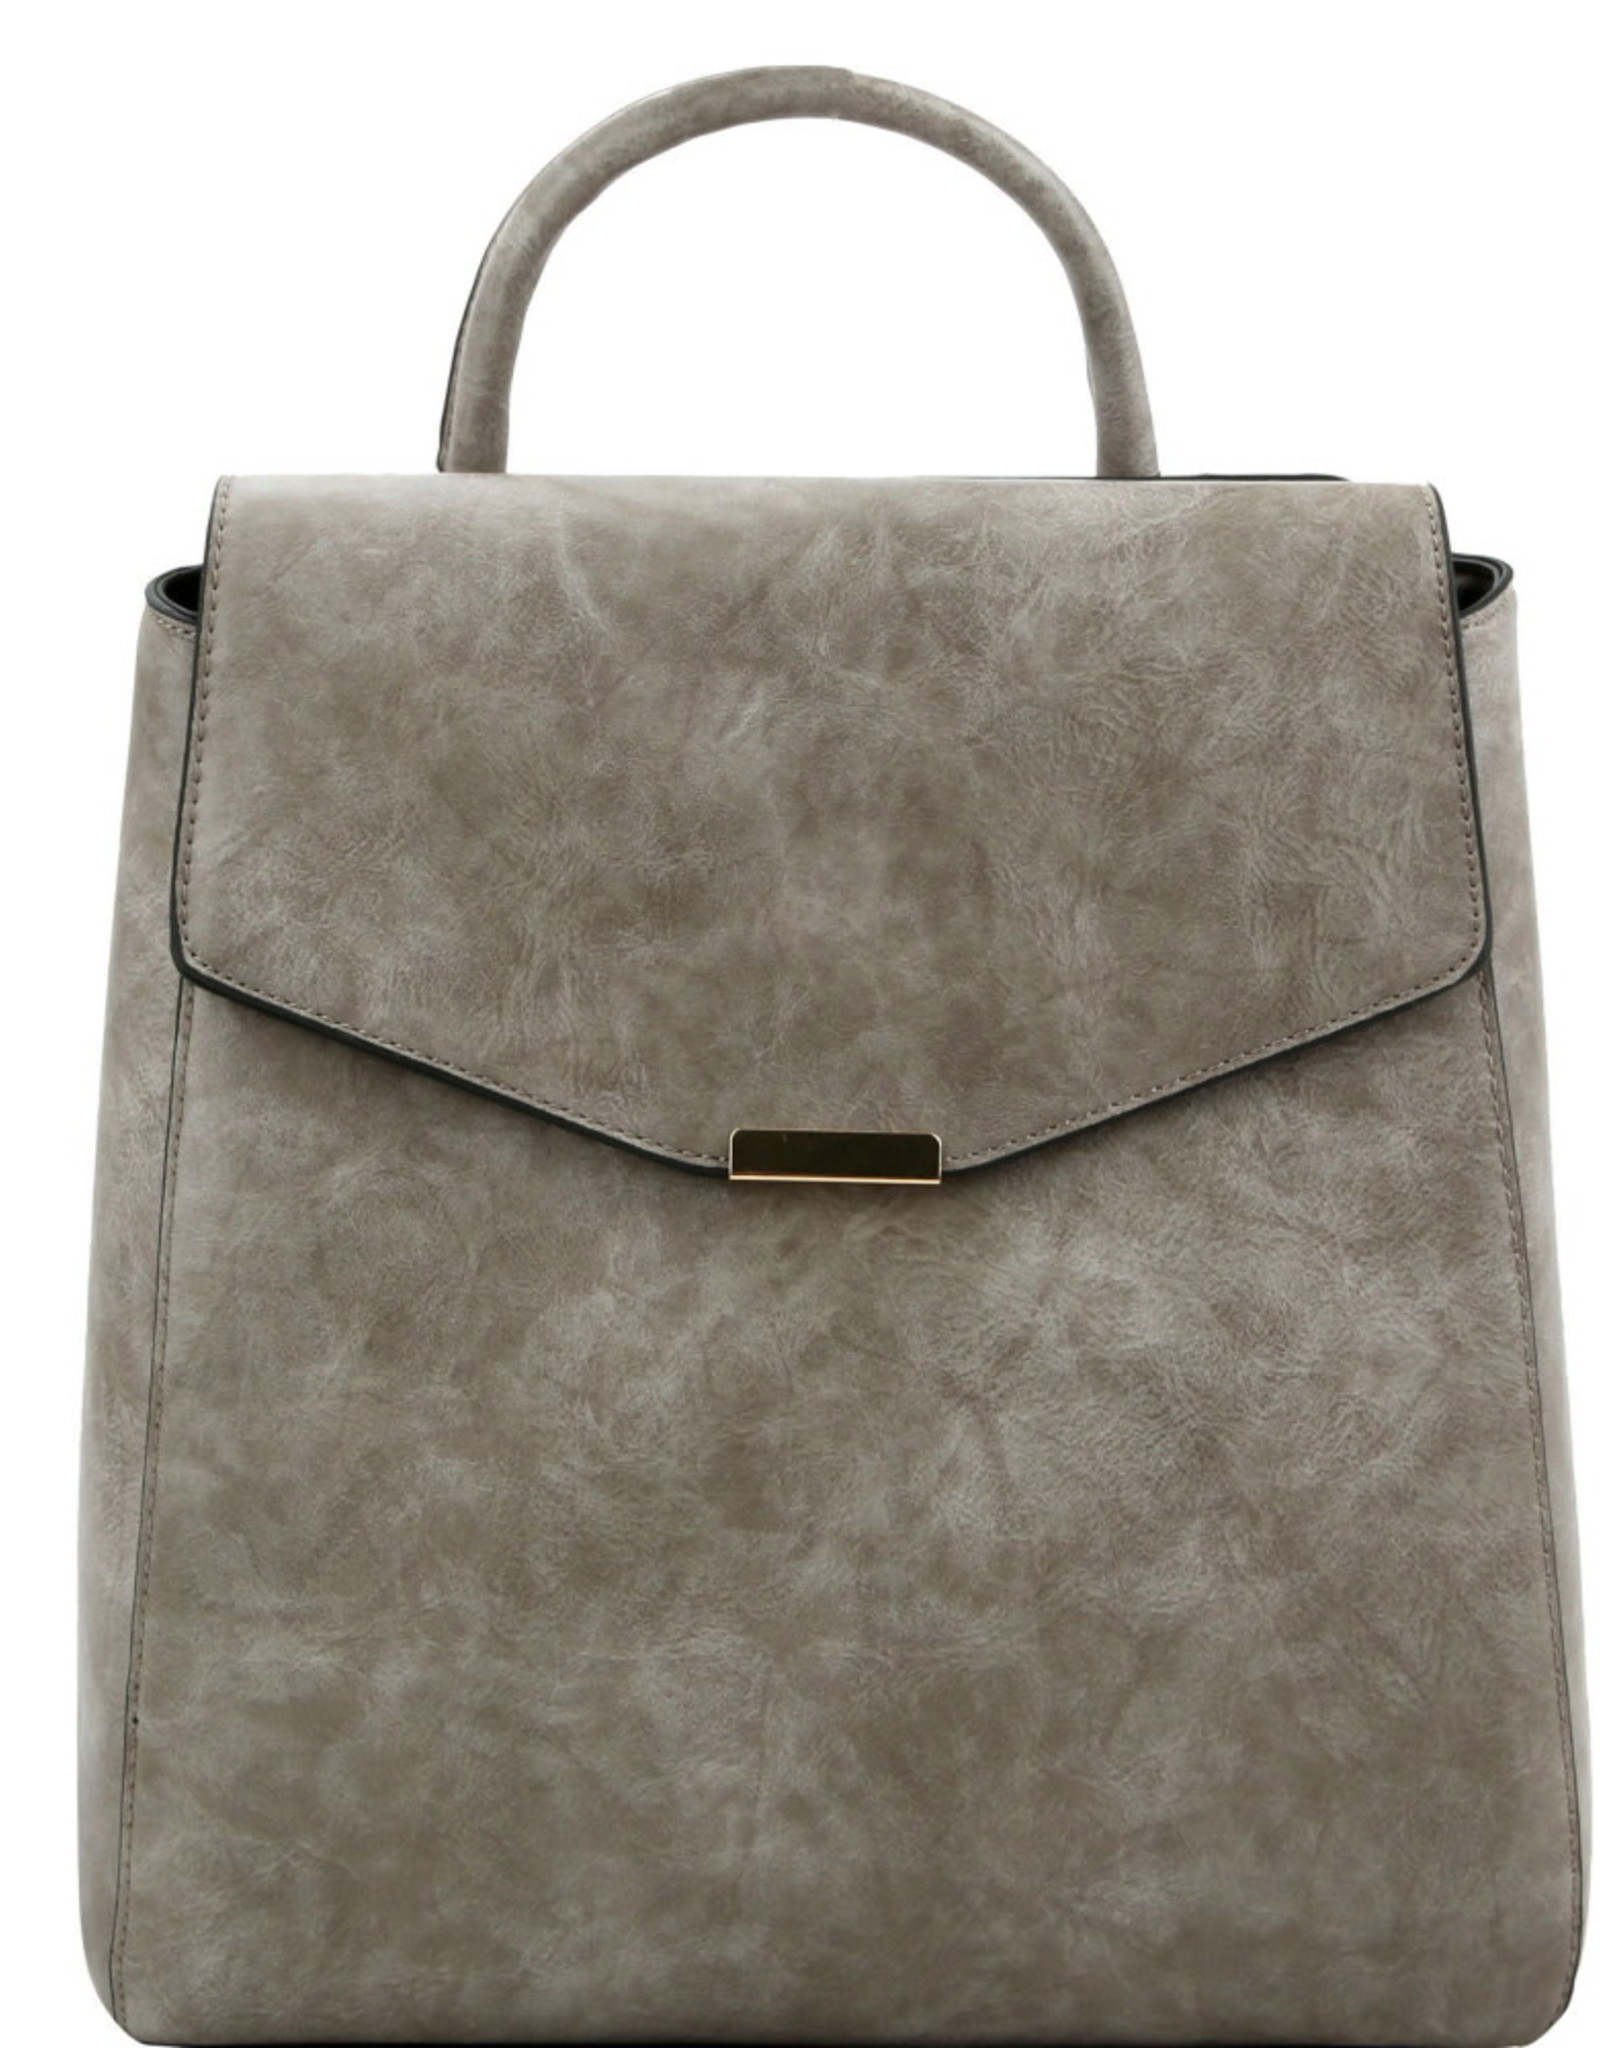 Lovelypurse4u BACKPACK-HARDWARE ACCENT STRUCTURED FLAP